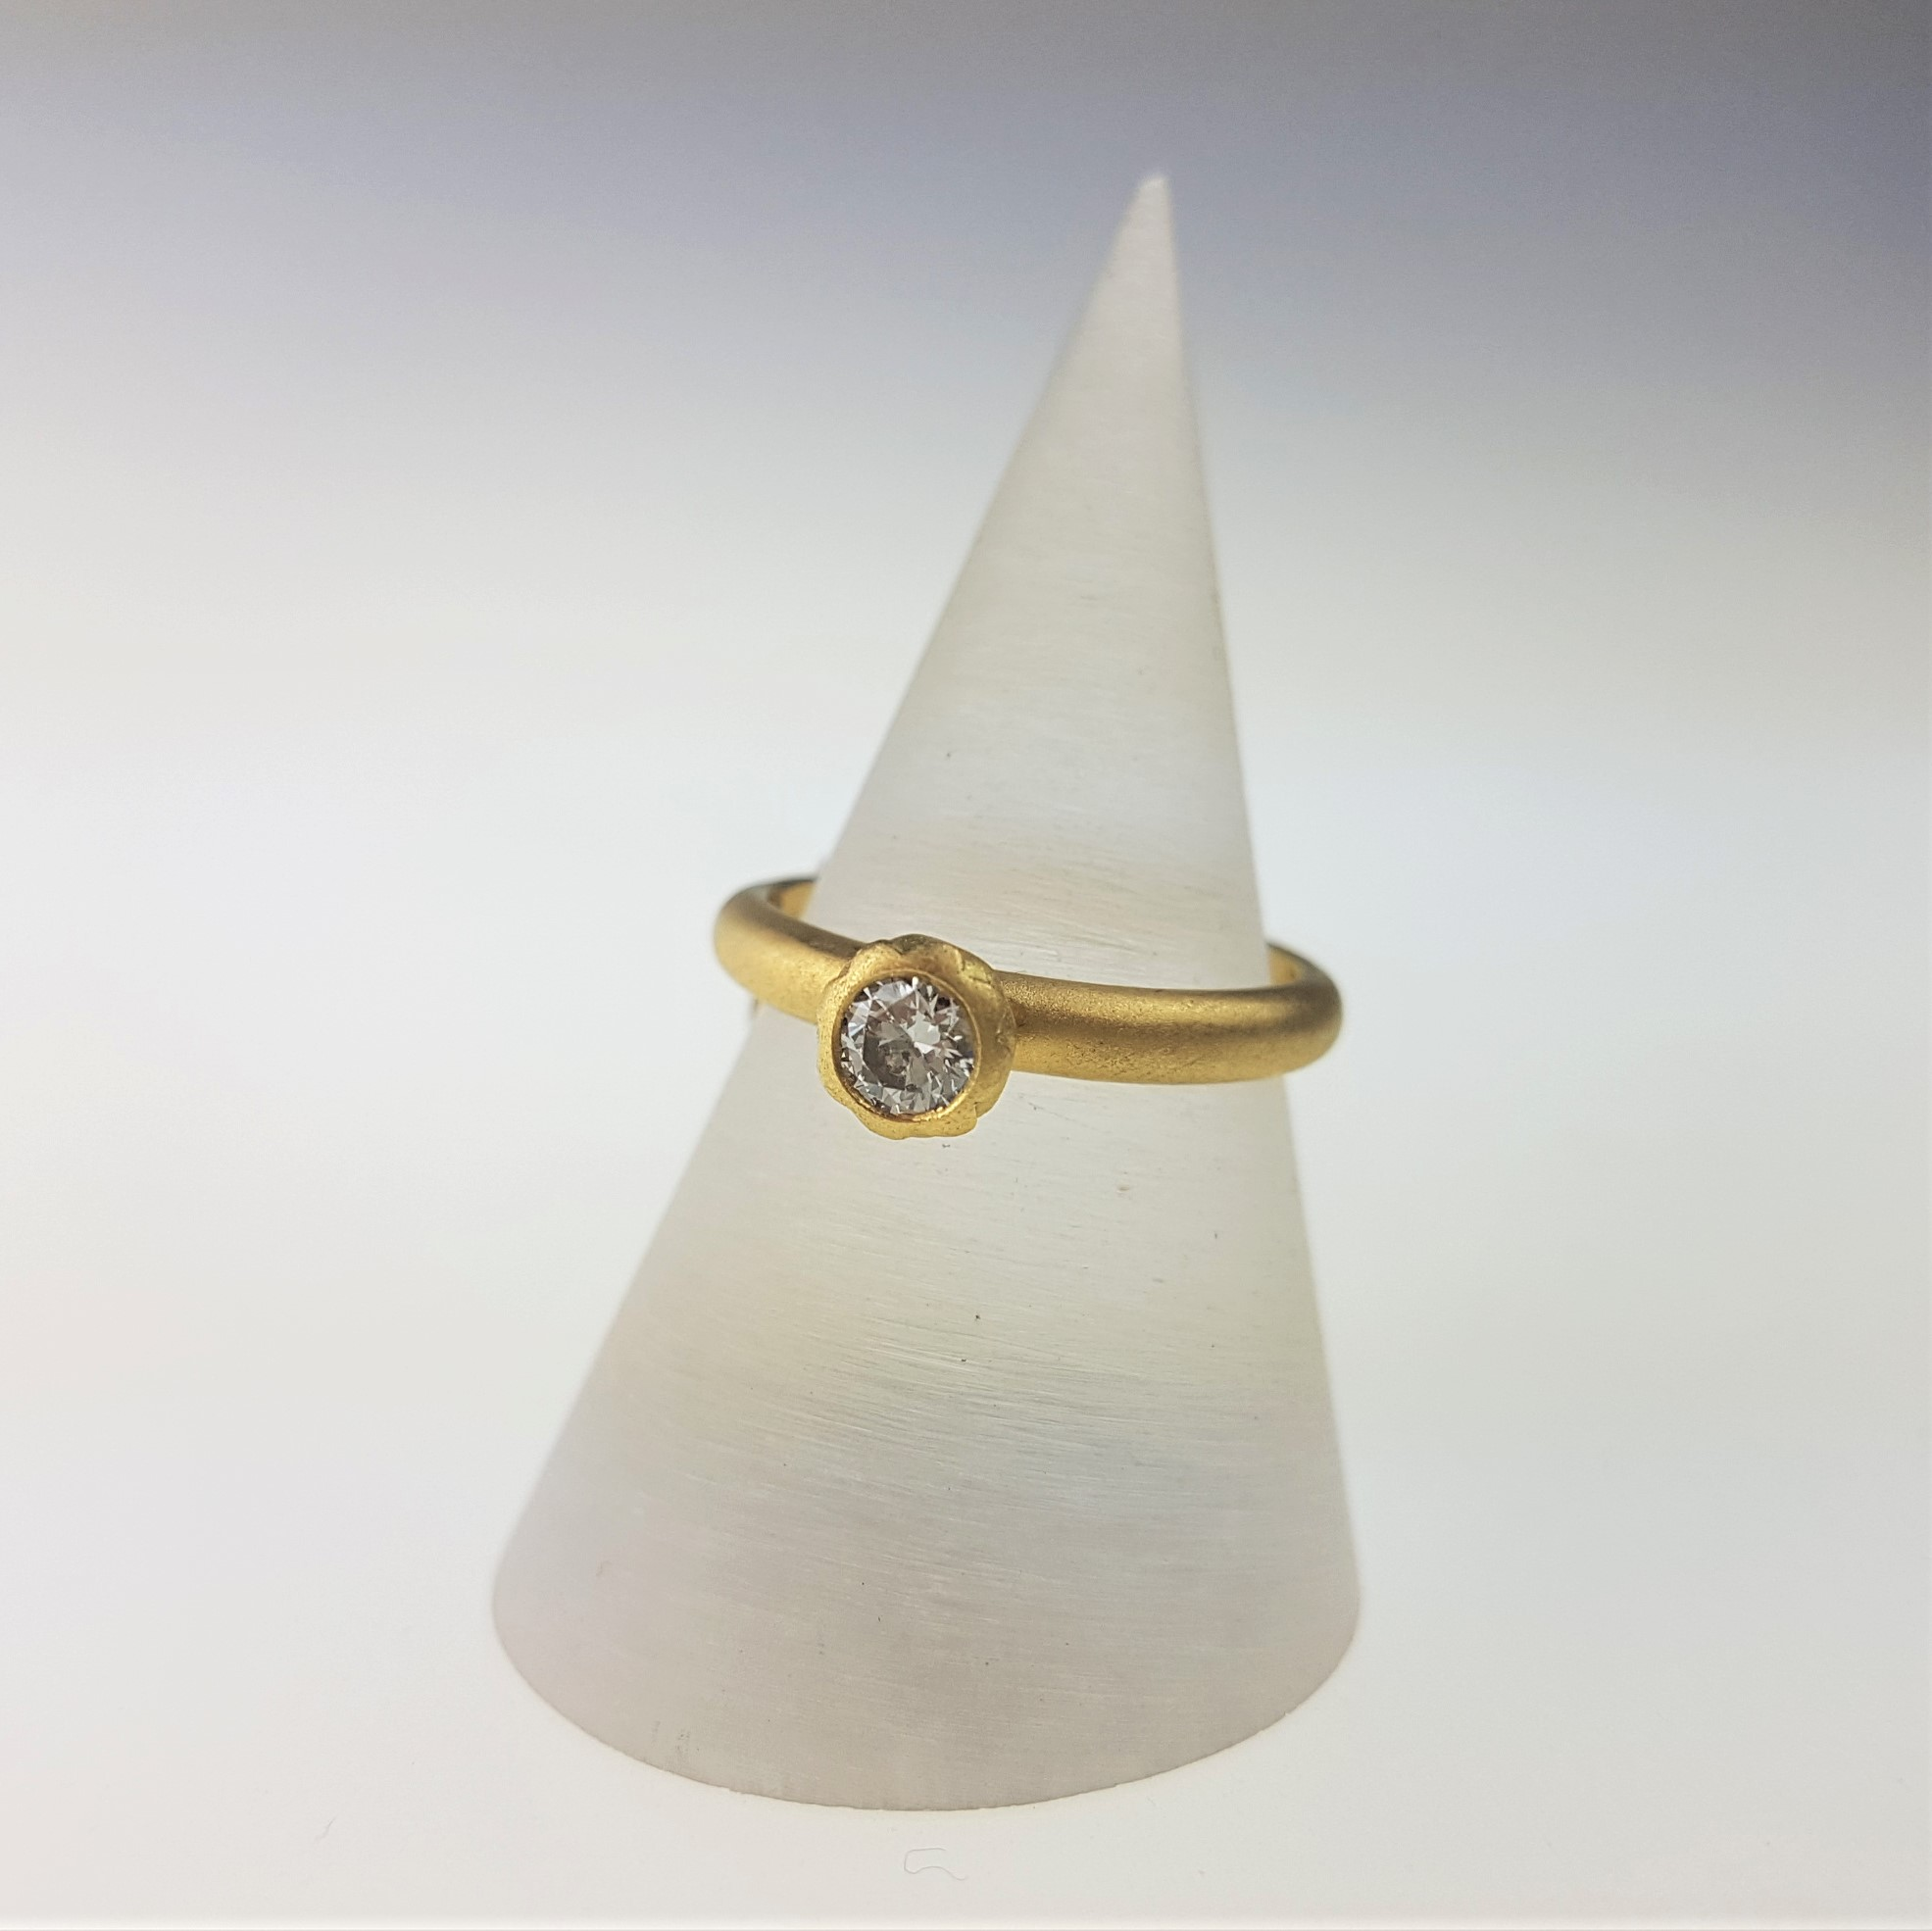 Floral & Feminine - Victoria Walker draws on the intricacies of nature seen in her kinetic flower lockets, and also in the petal shapes of her solid gold and diamond rings. This solitaire diamond is modelled on a stylised poppy head in 18ct yellow gold, £1585, handmade in Cornwall.